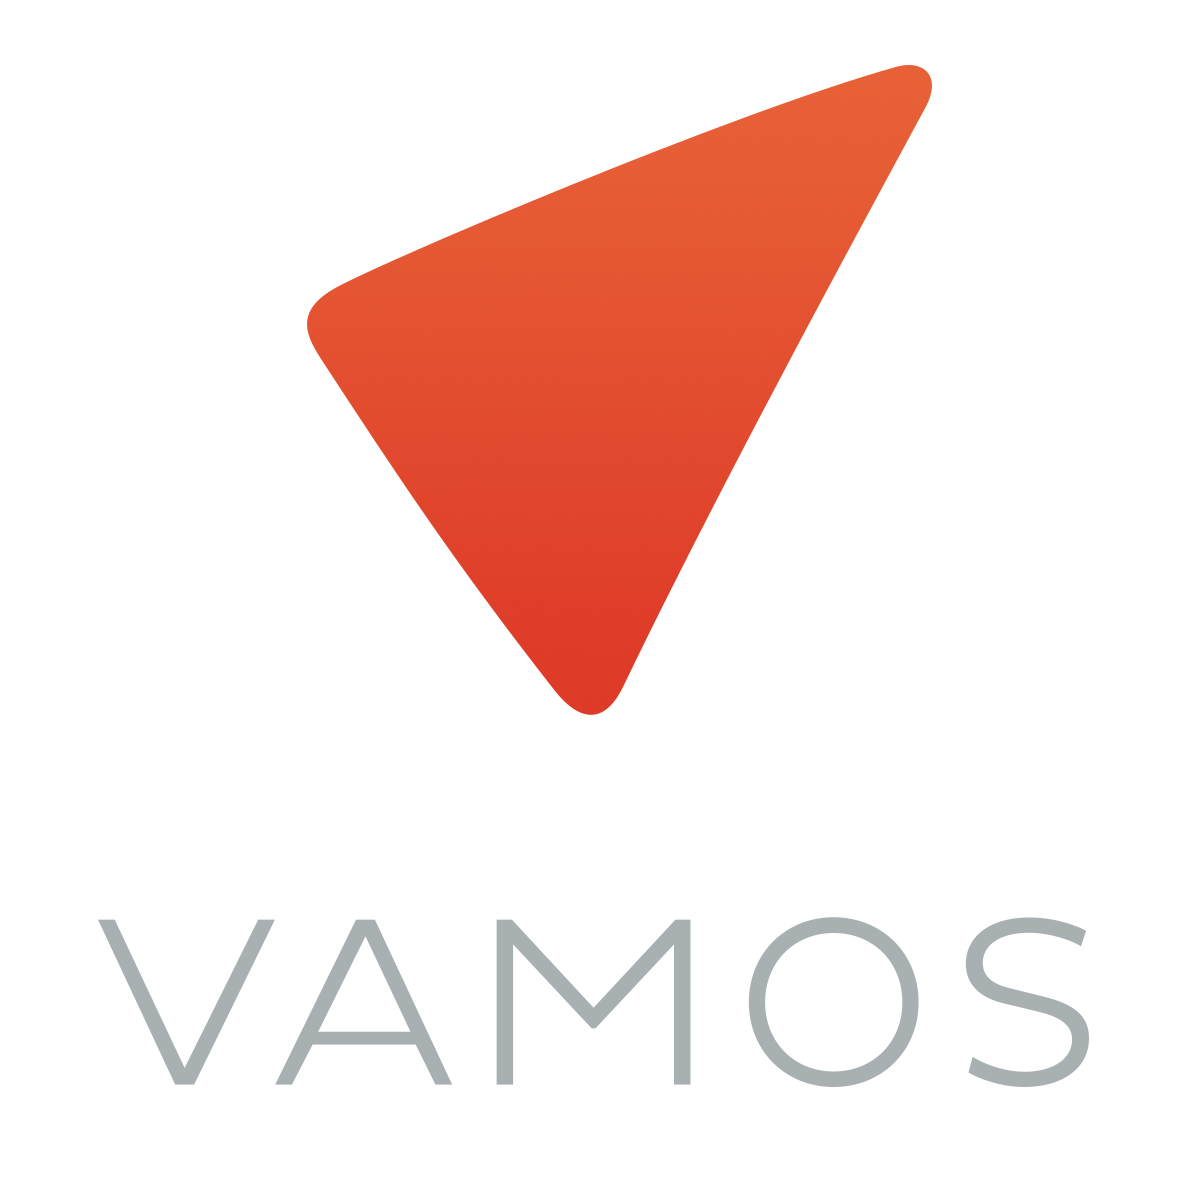 Vamos - The Event Guide -www.getvamos.com